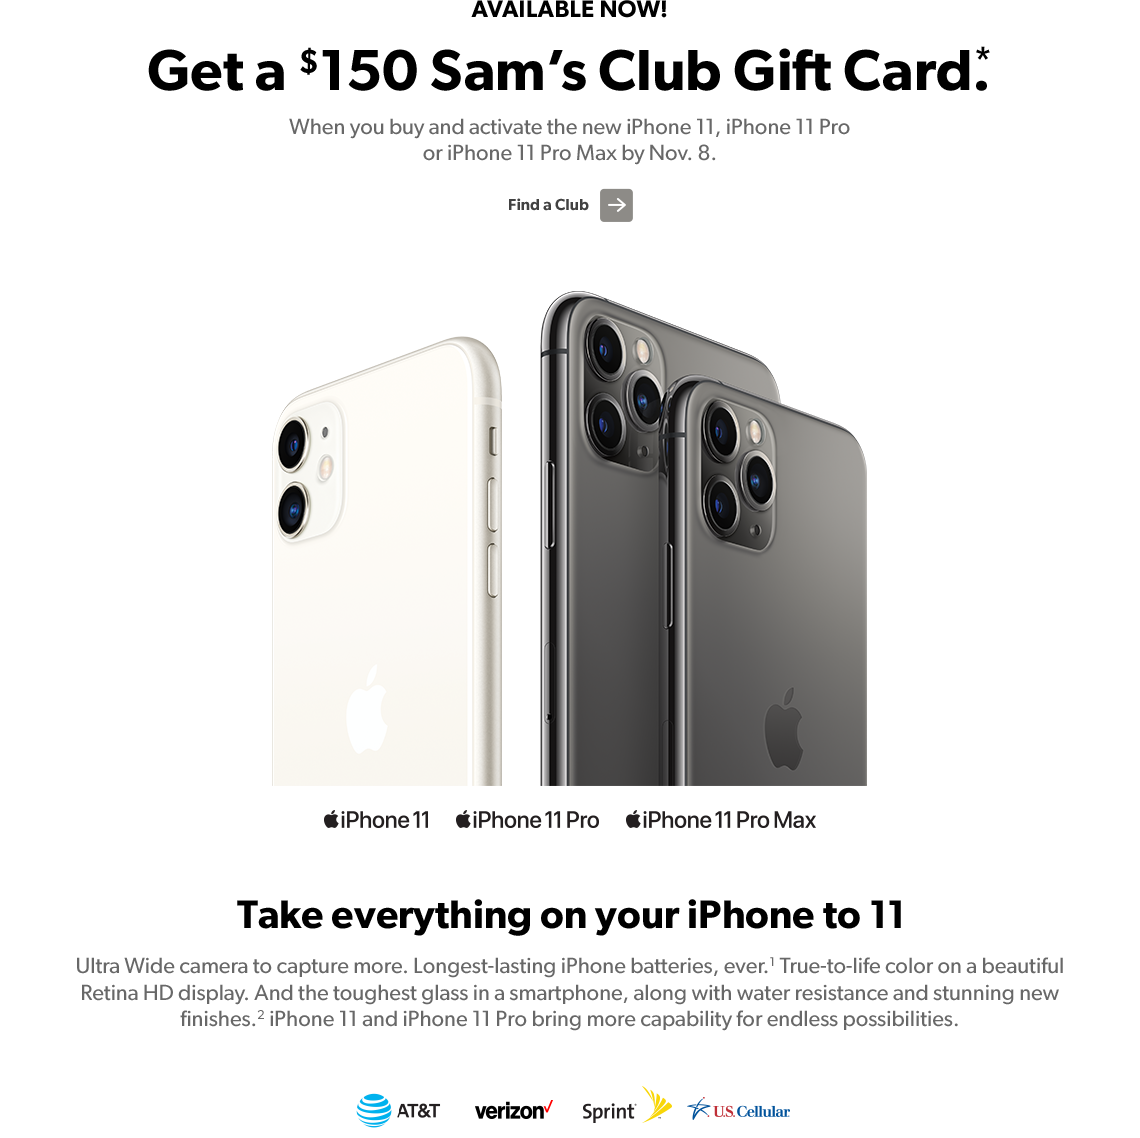 iphone 11 sam's club gift card